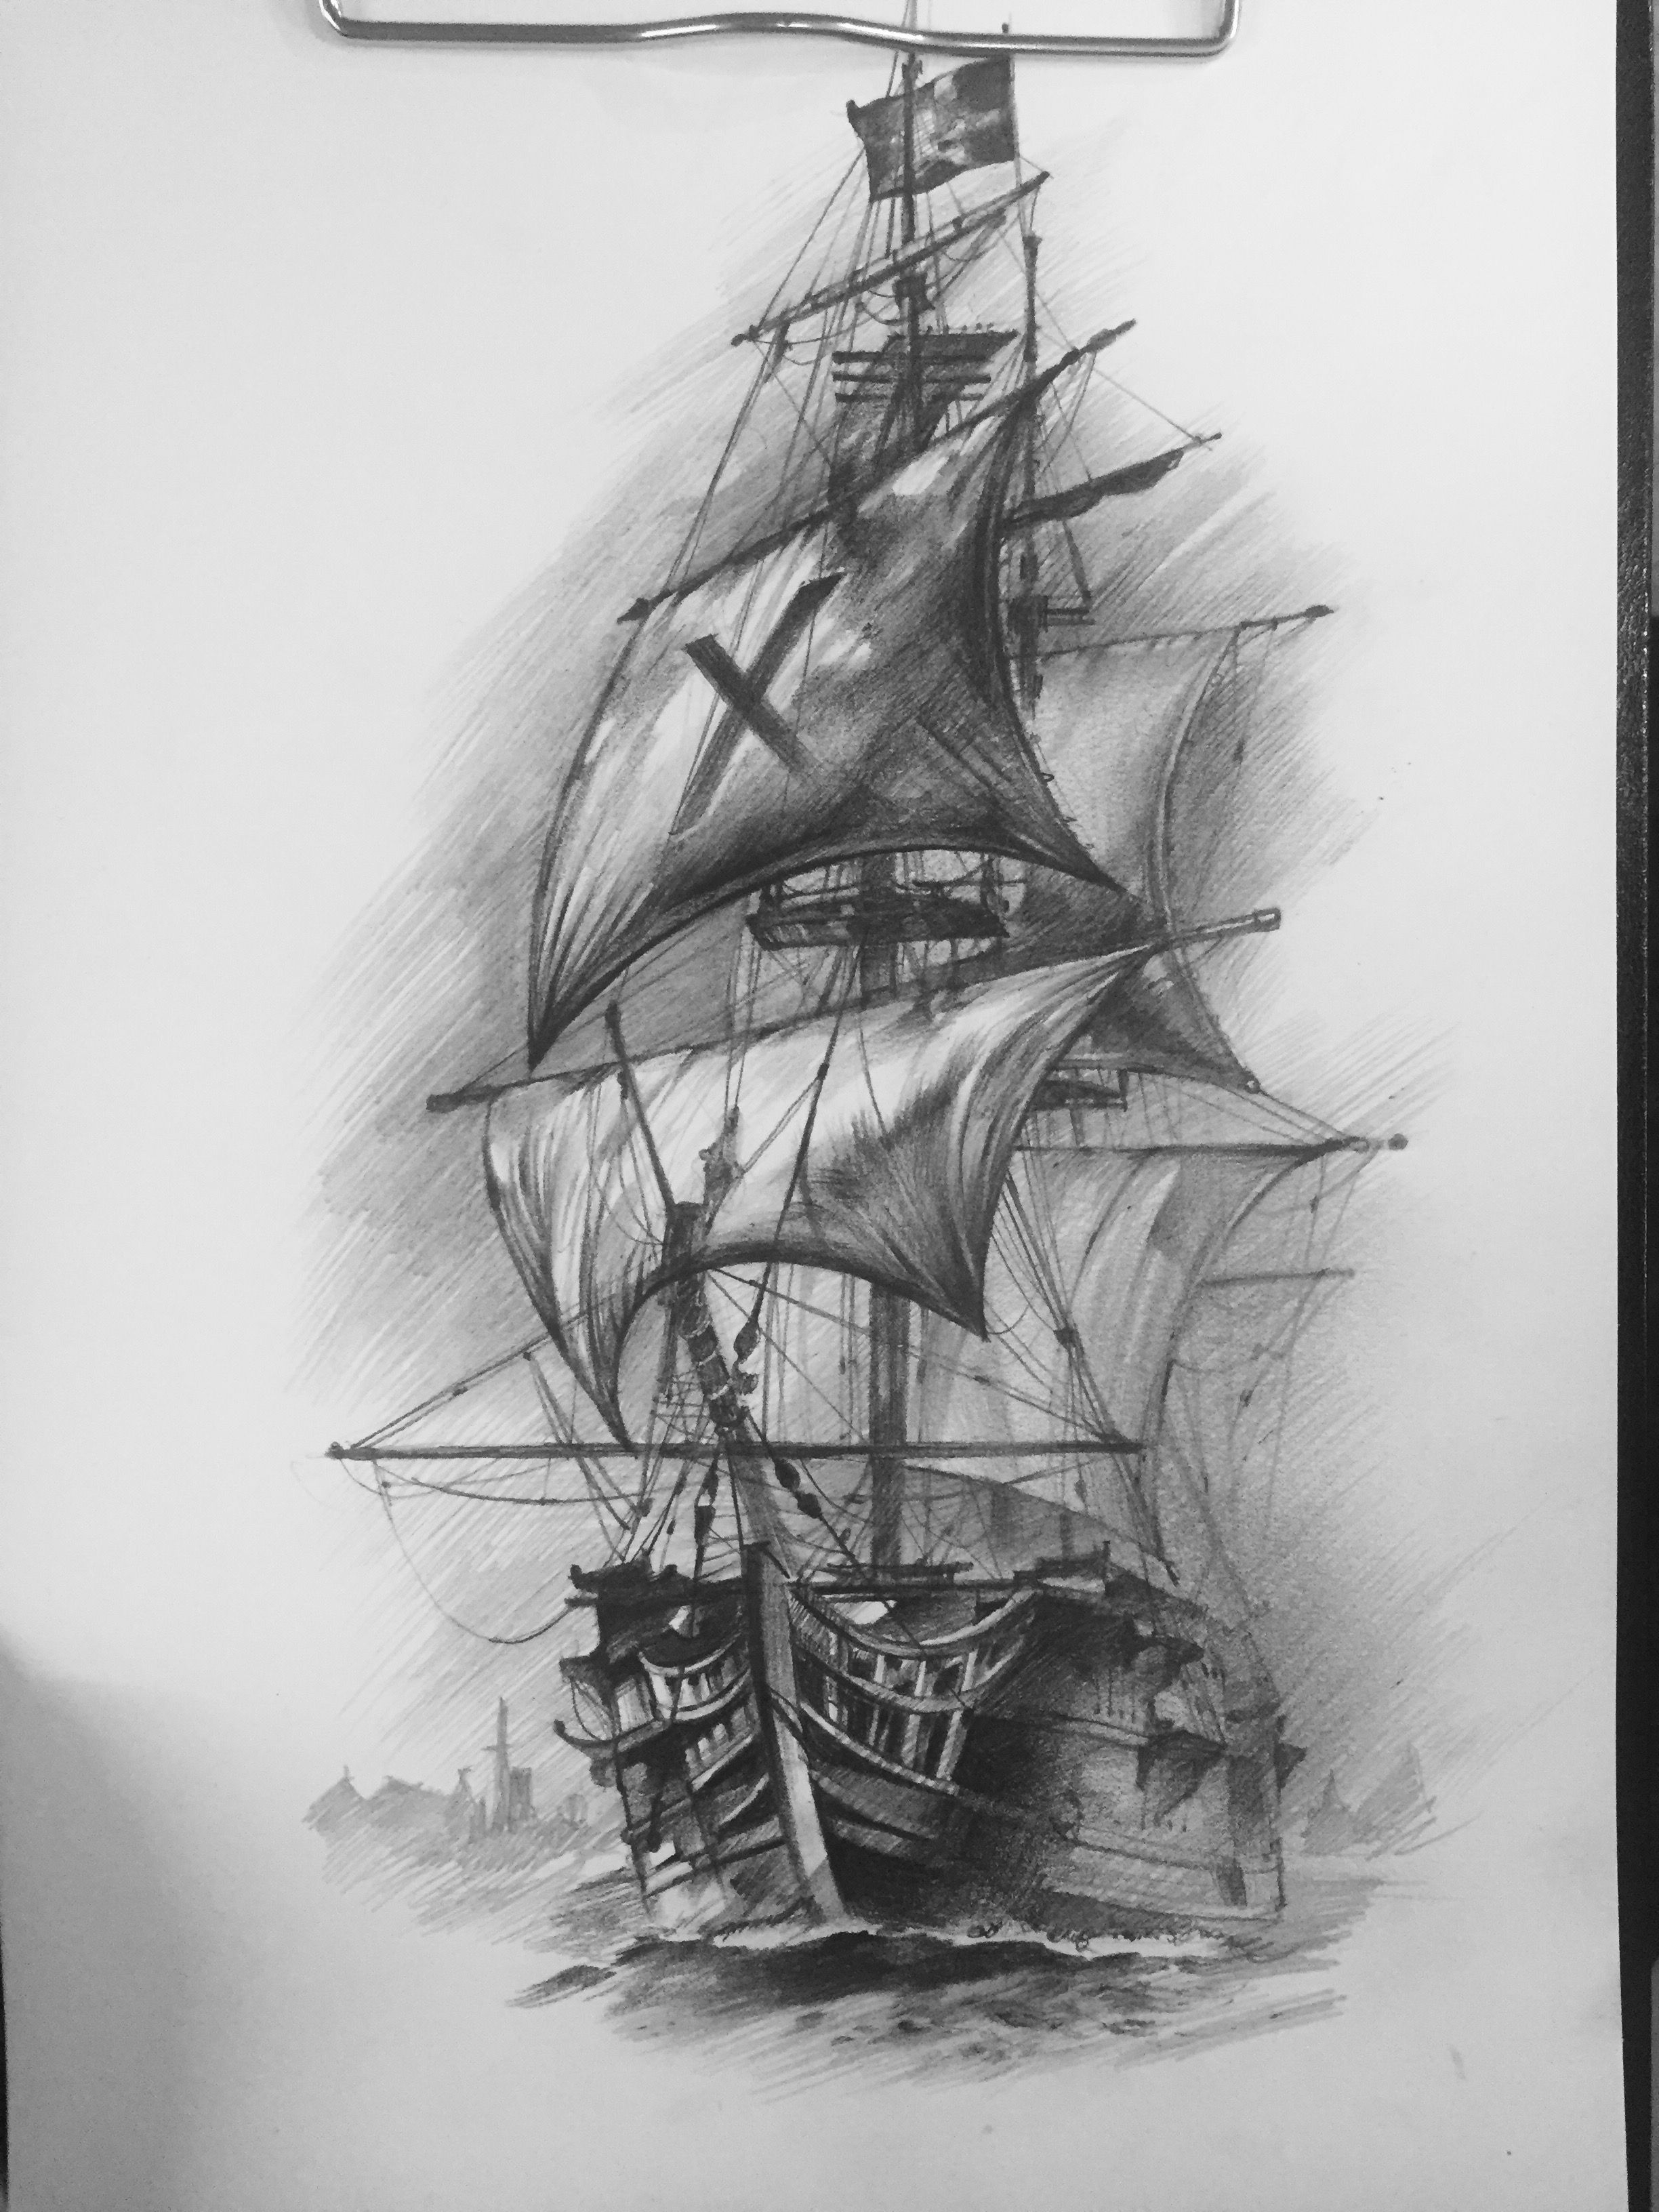 Pin By Christopher Hastings On Tattoos Pinterest Sailing Ships Ship Diagrams Pirate Tattoo Croquis Architecture Boat Drawing Octopus